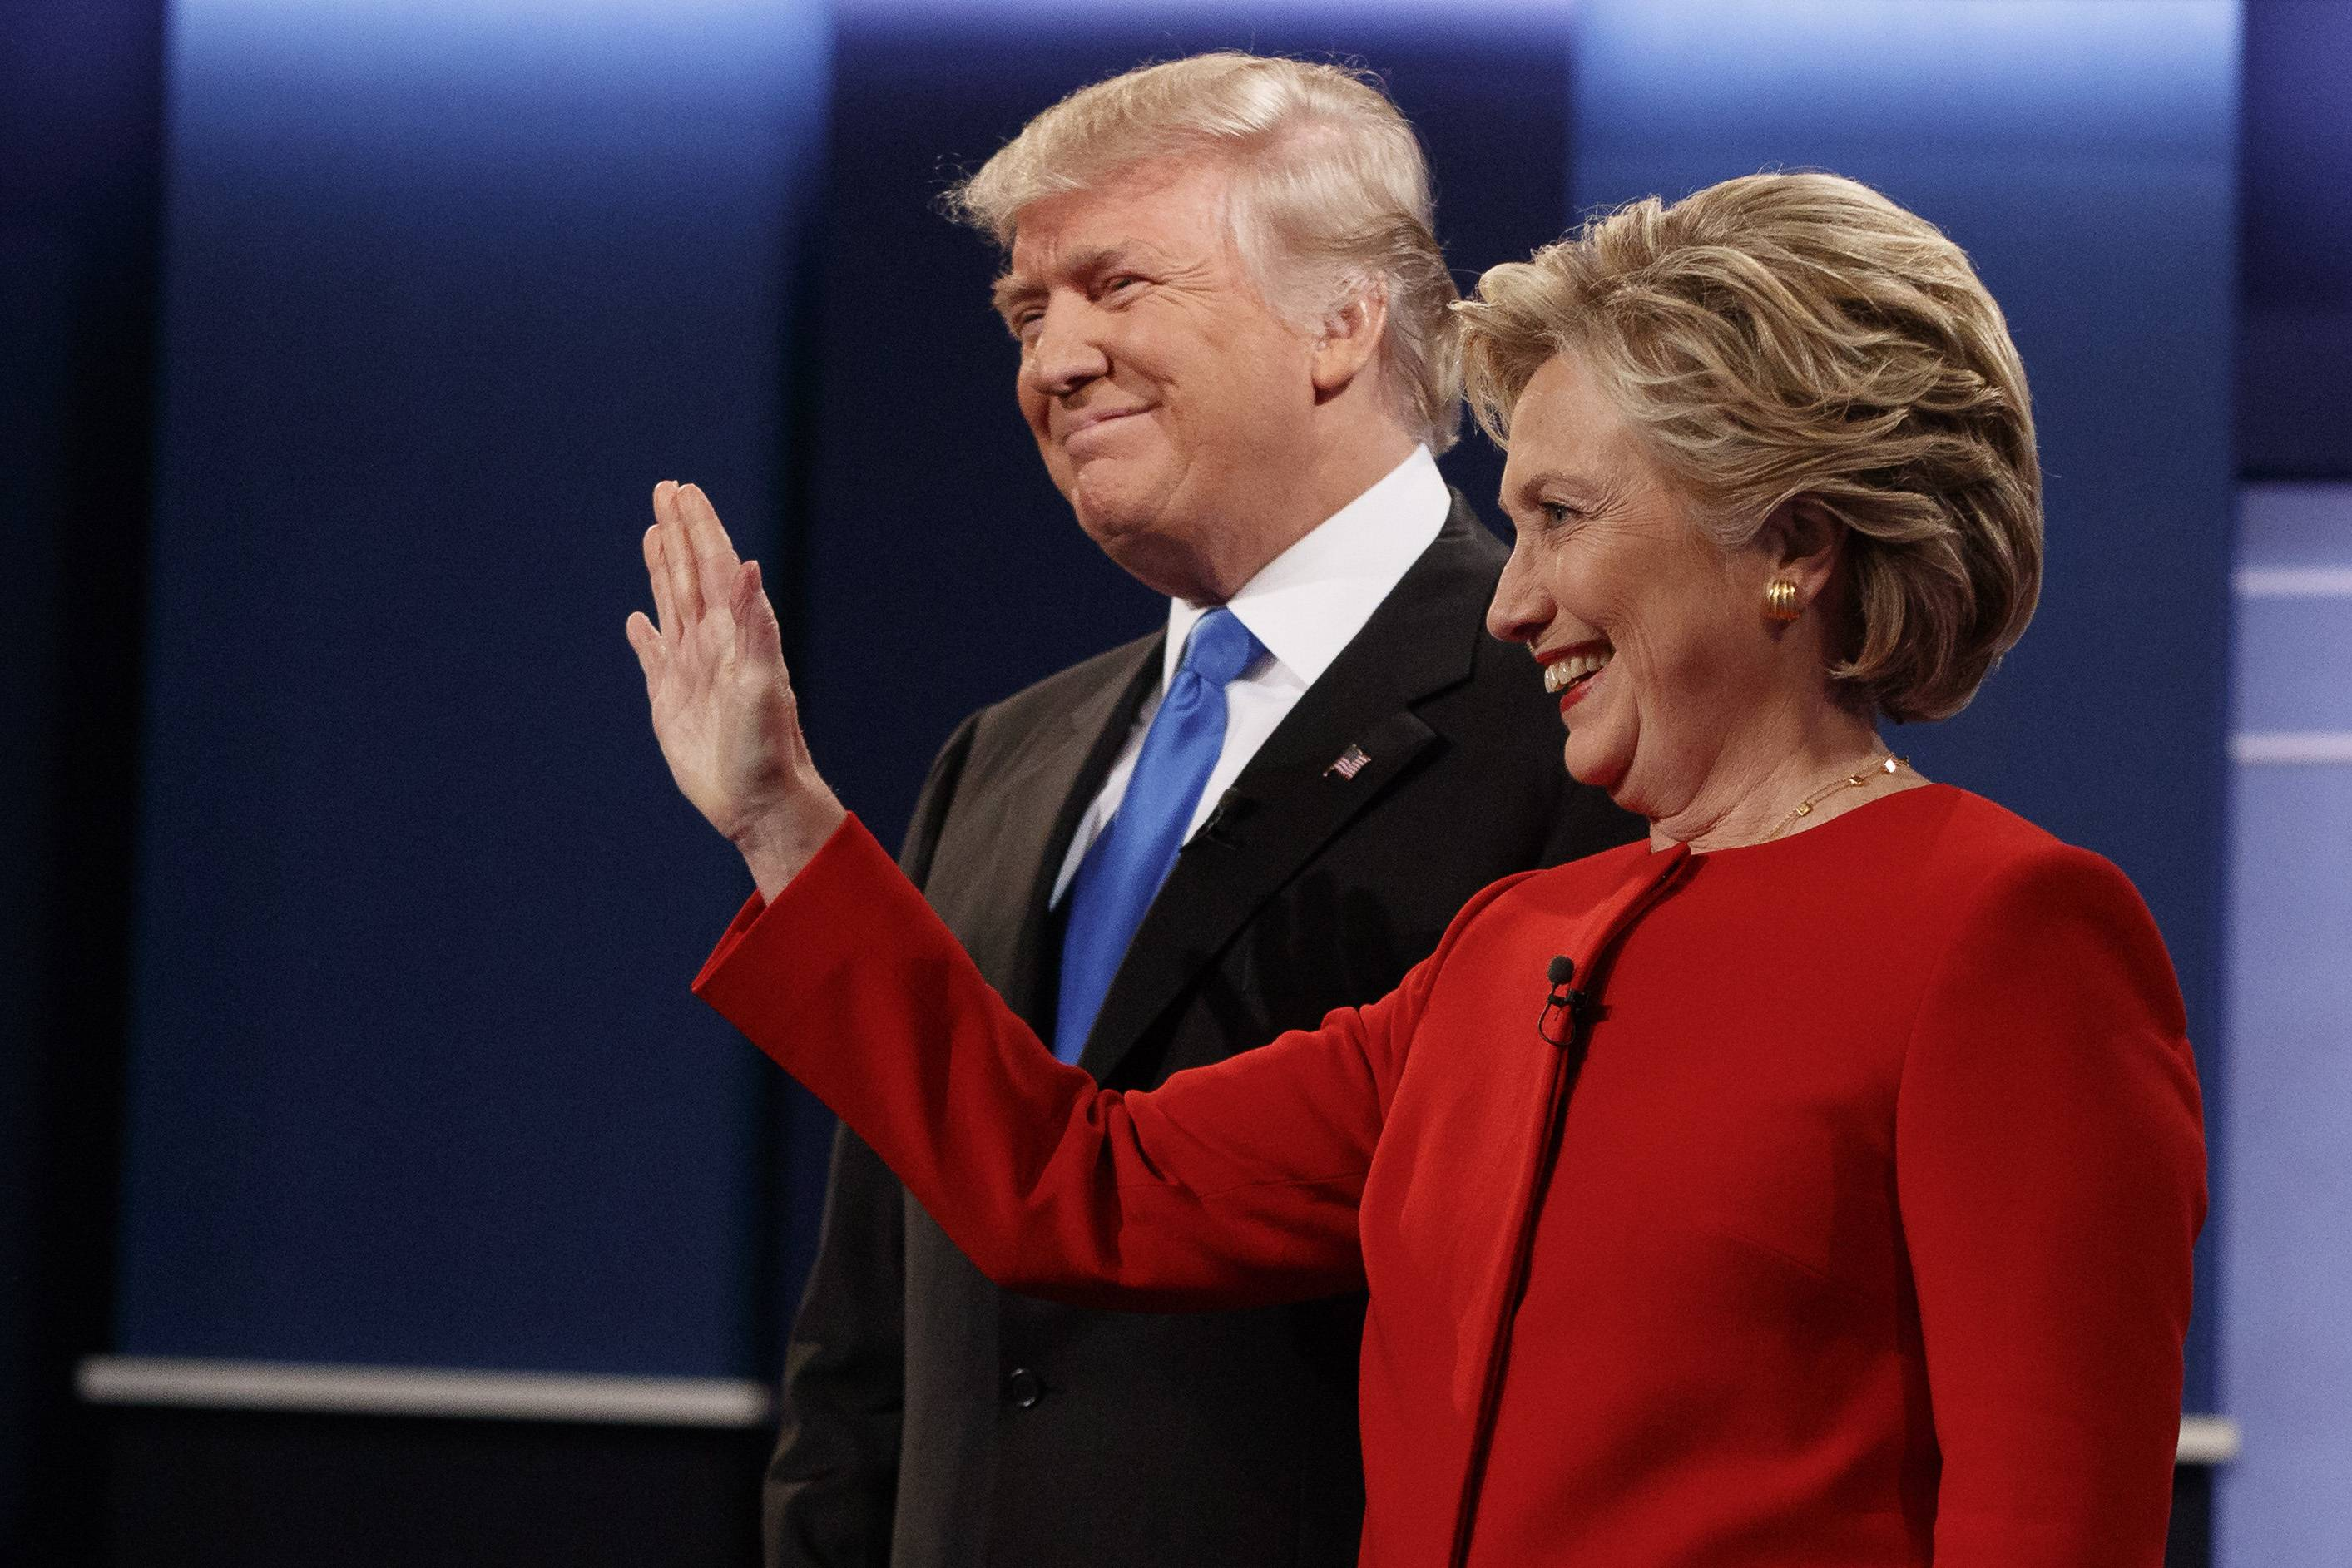 Endorsement: Donald Trump is unfit, Hillary Clinton for president